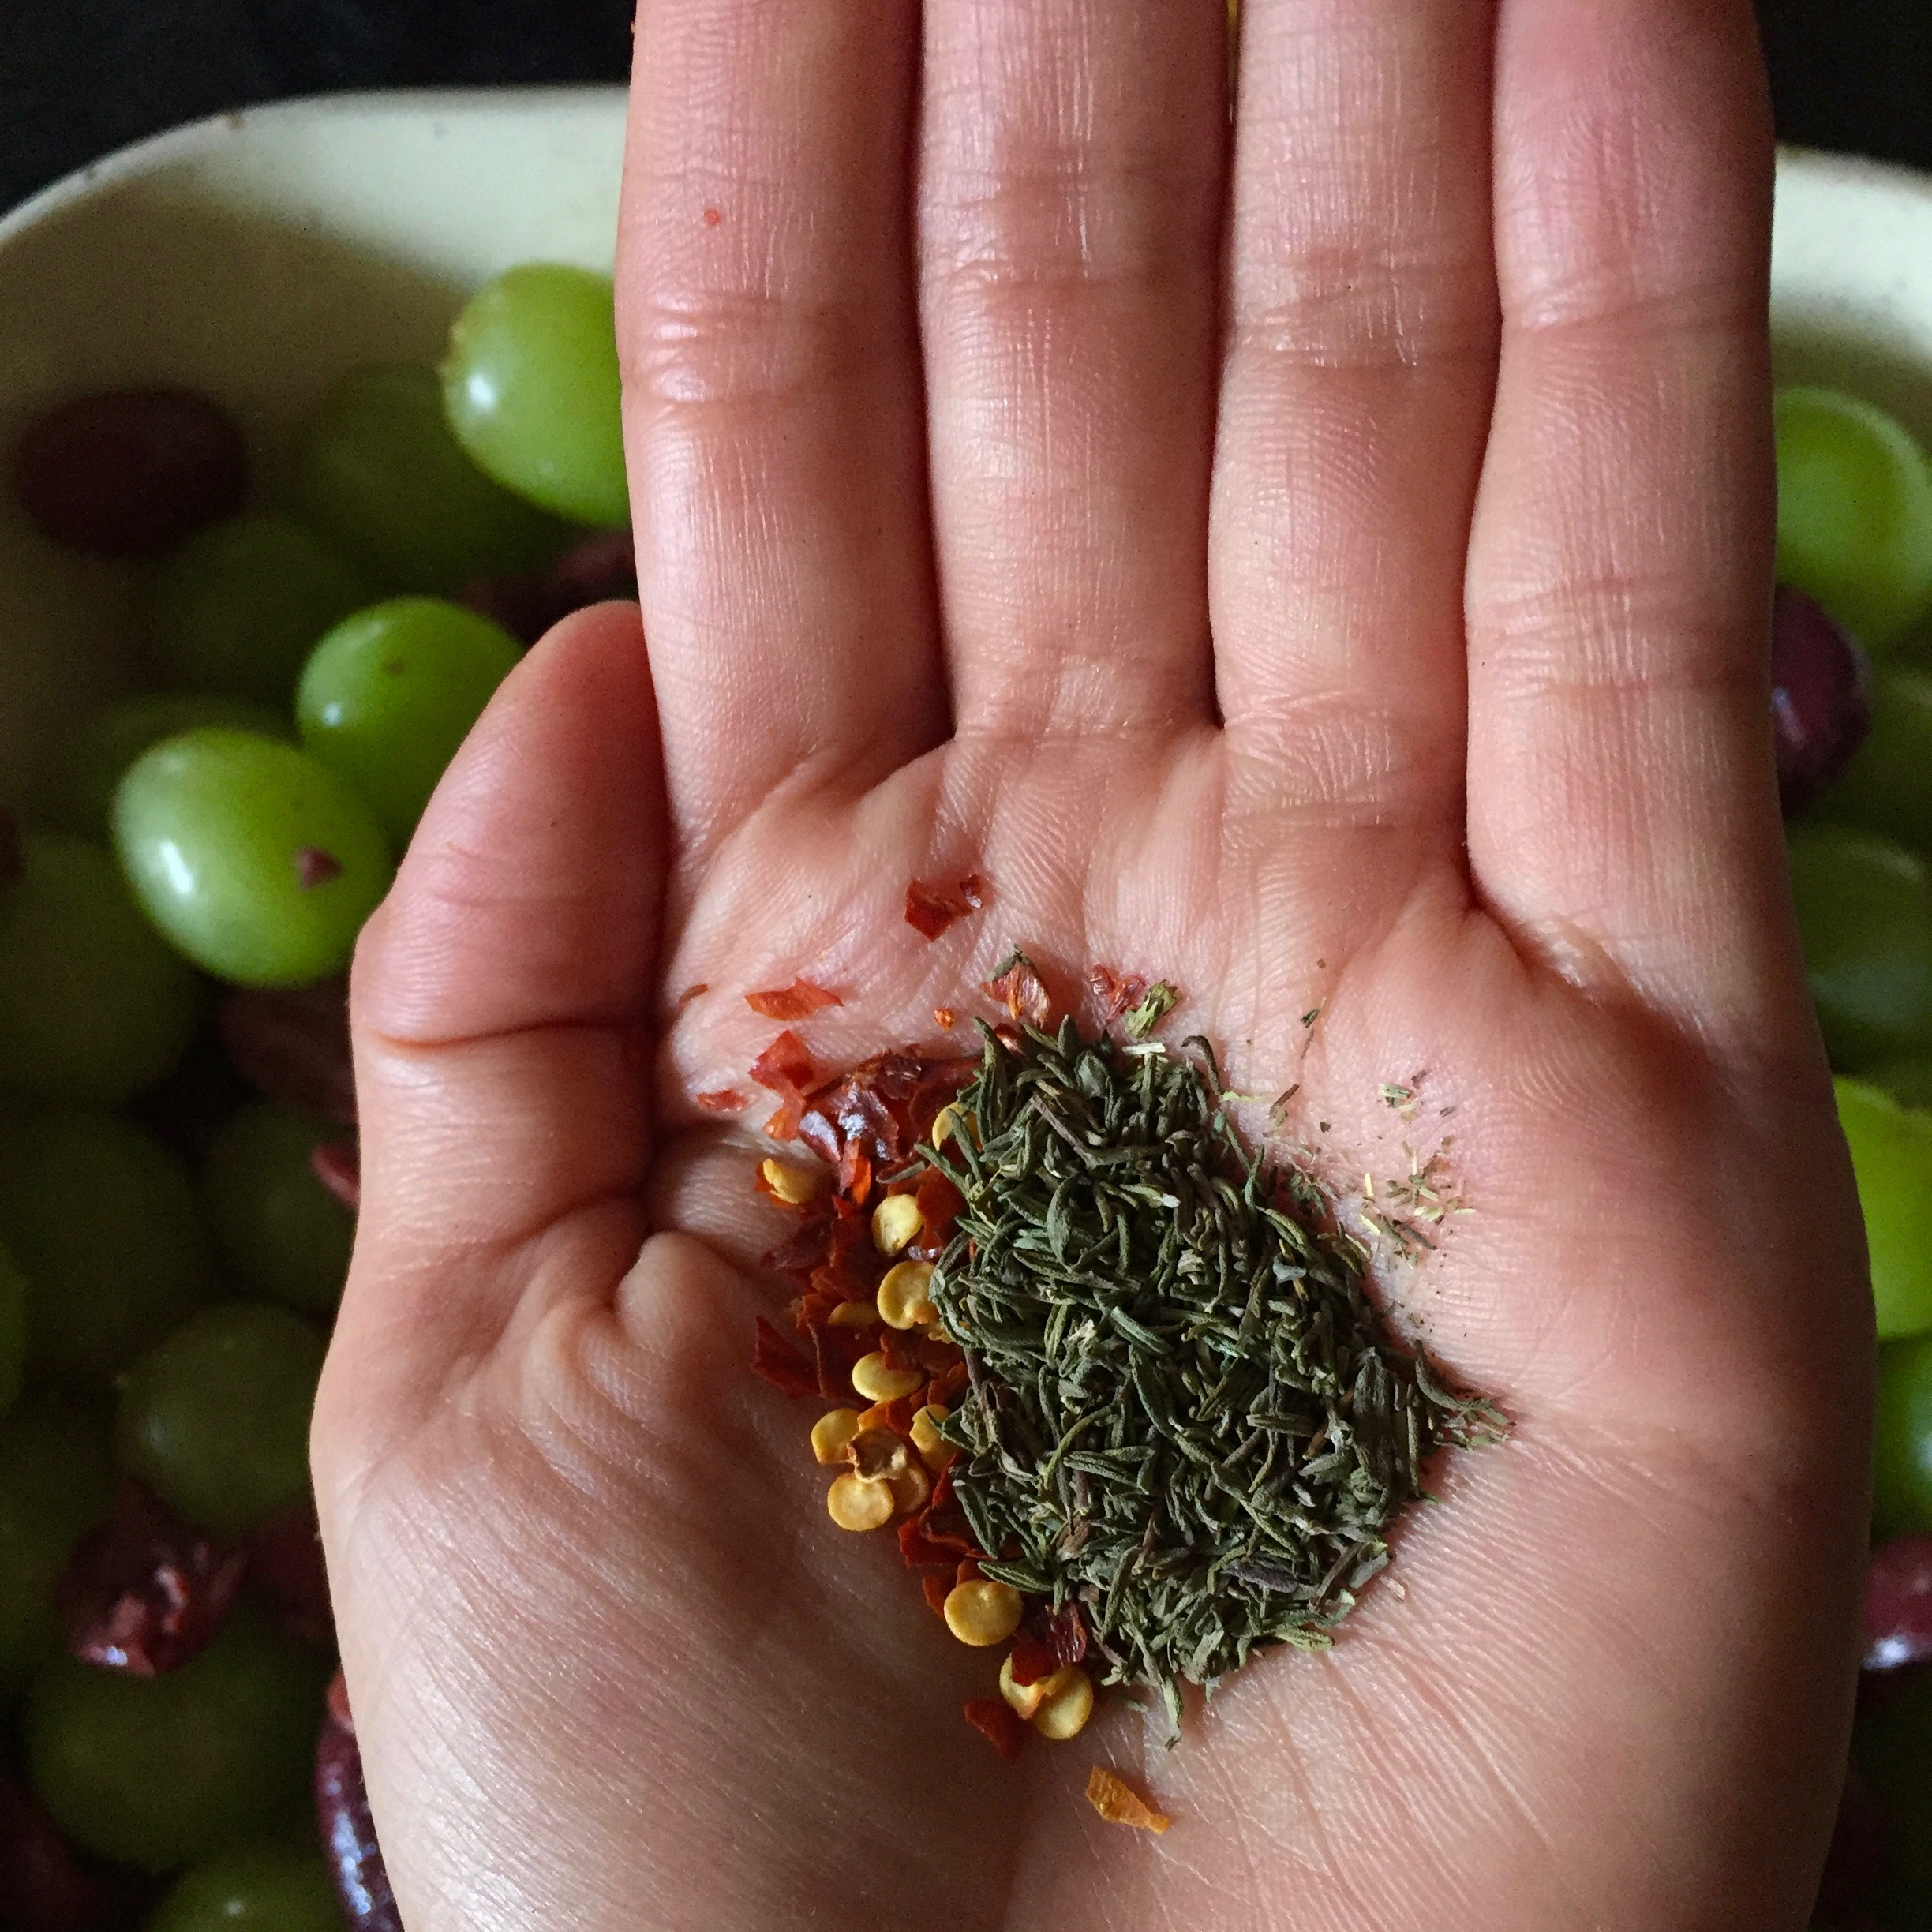 Crumble the thyme, a rough chop, if you're using fresh, salt, and red pepper flake. Sprinkle over mixture.